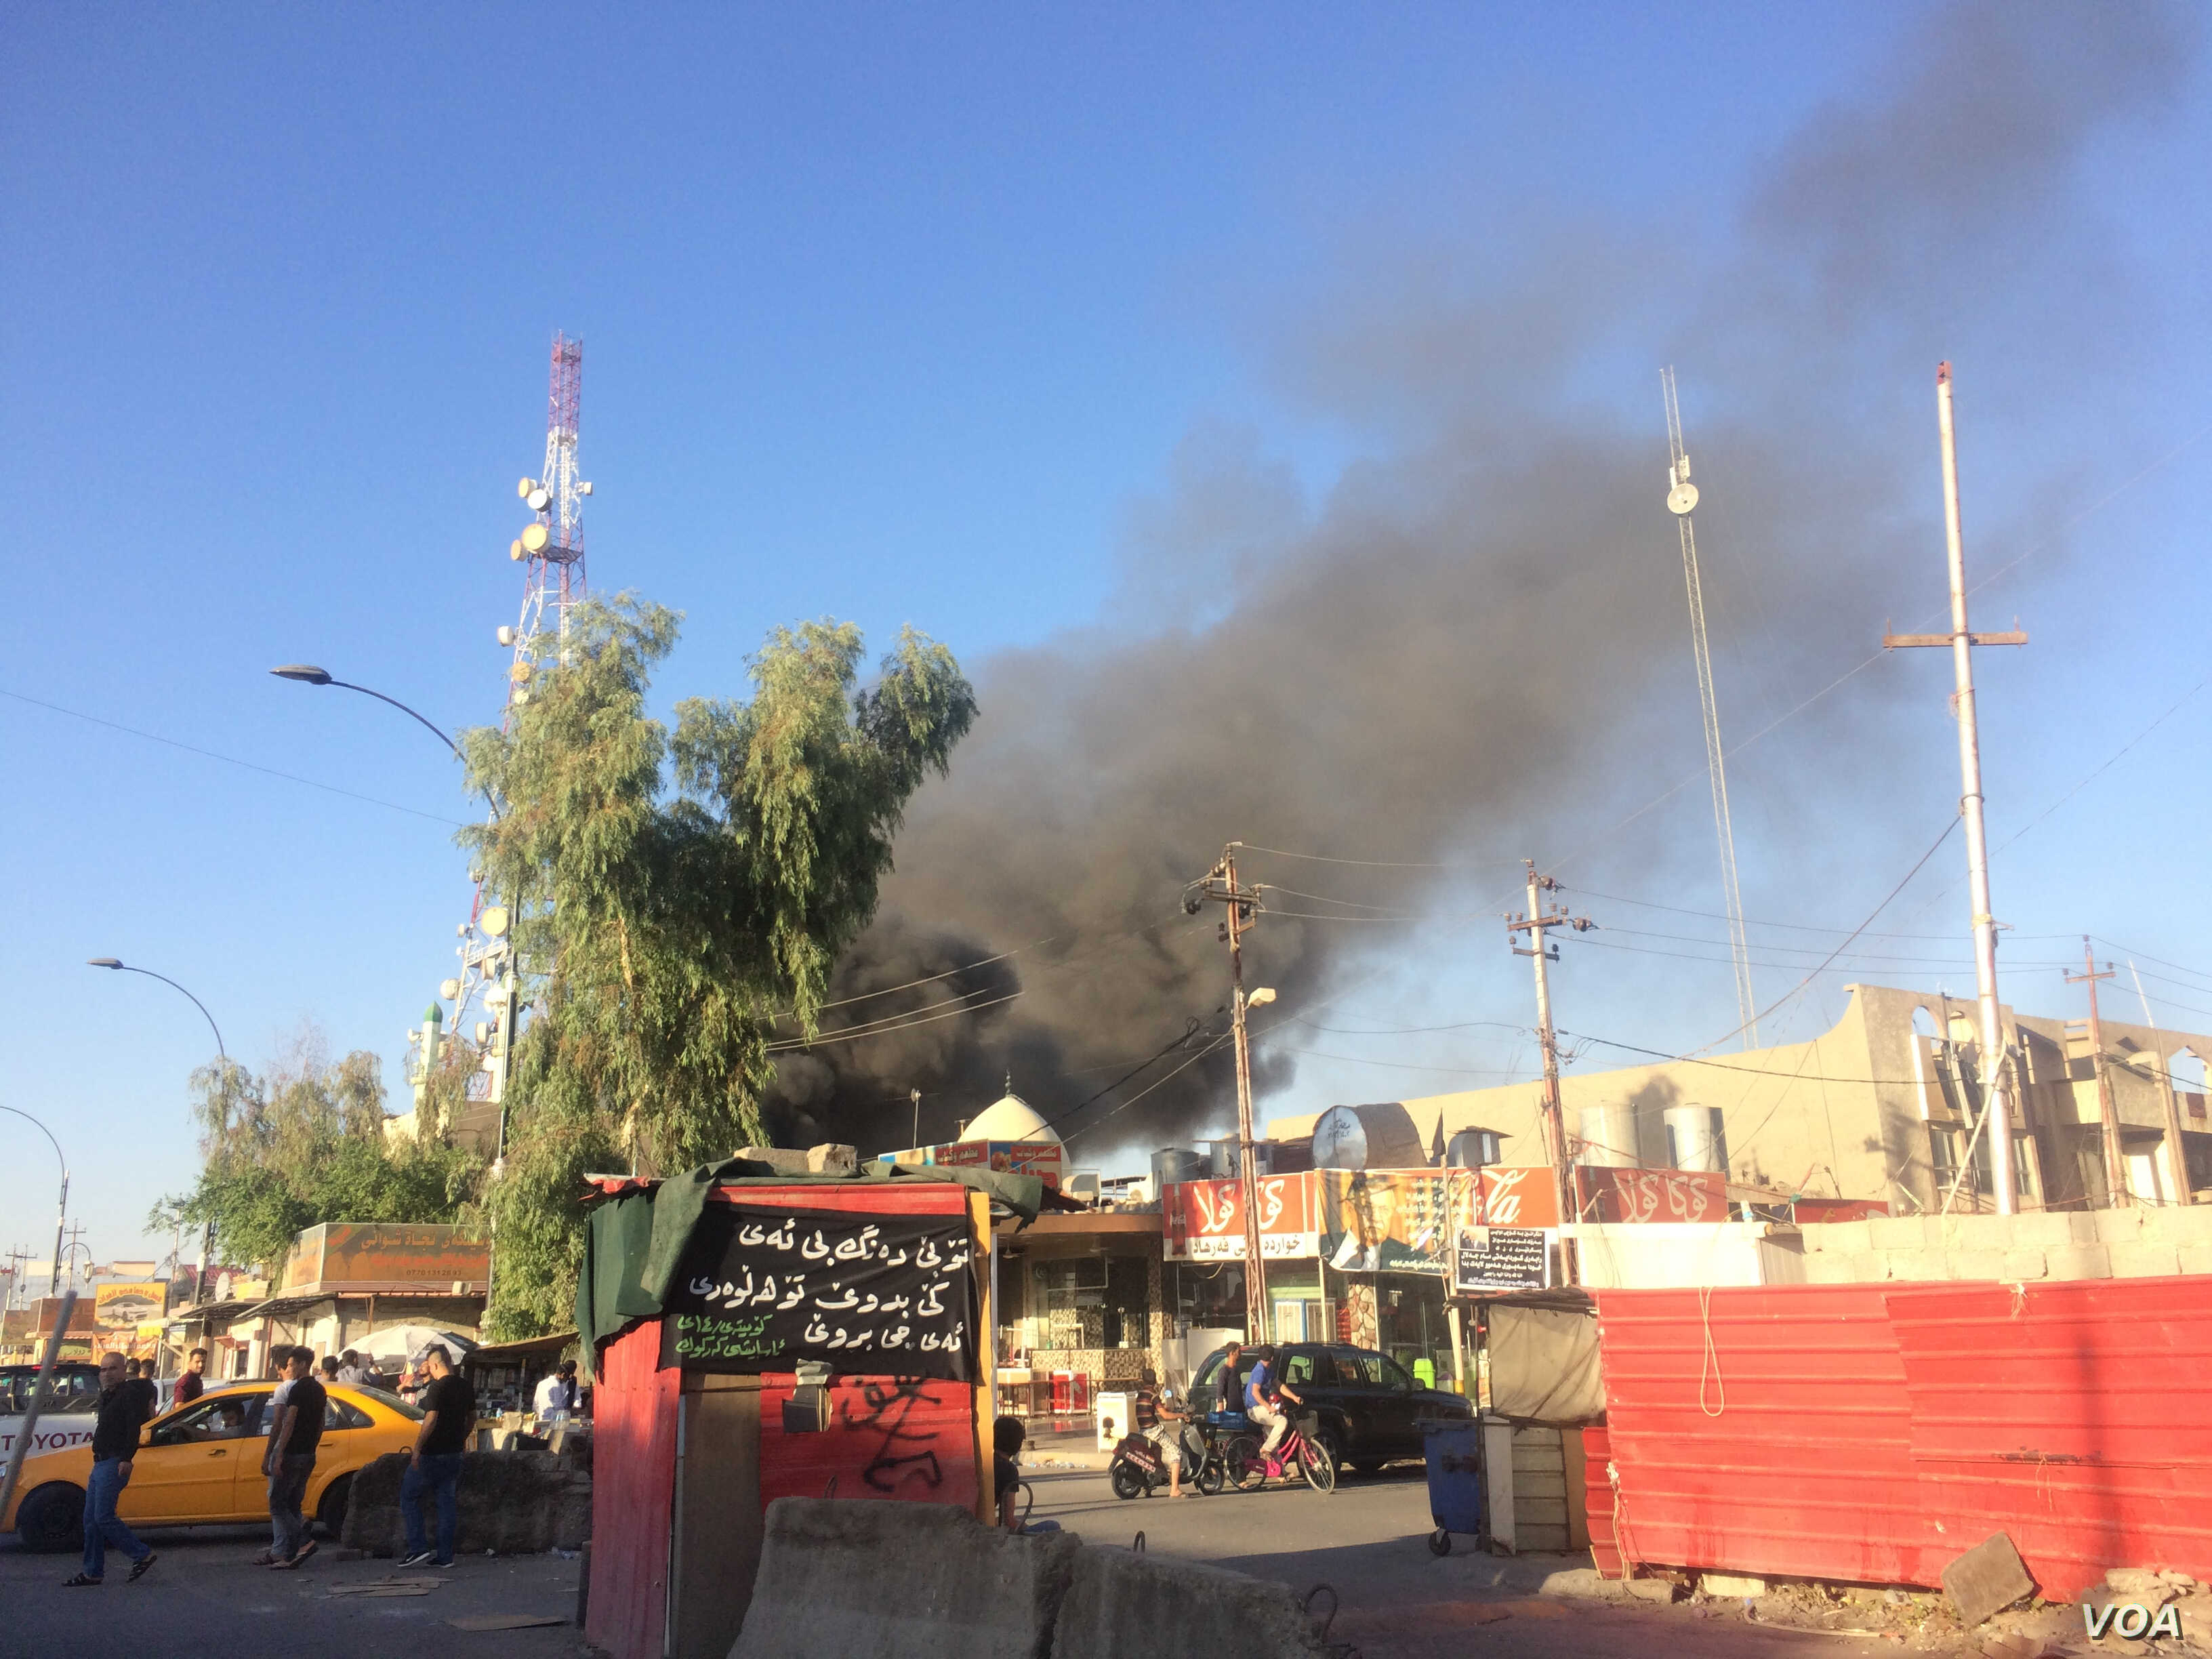 A blaze in a Kurdistan political party office in Kirkuk, Iraq draws onlookers who video the scene on their mobile phones on Oct. 17, 2017. (H.Murdock/VOA)